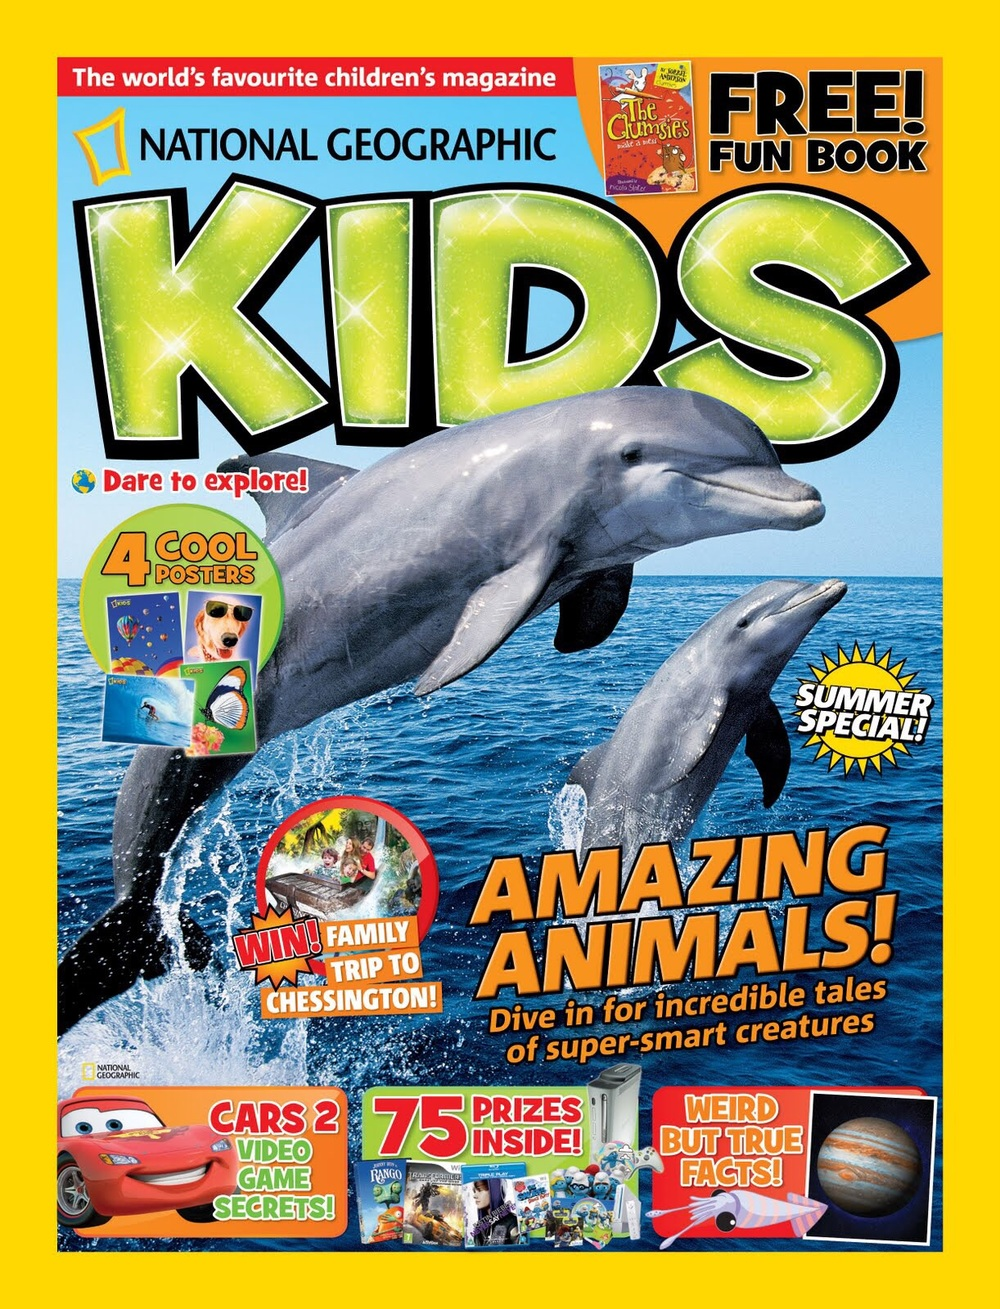 National Geographic Kids magazine here.